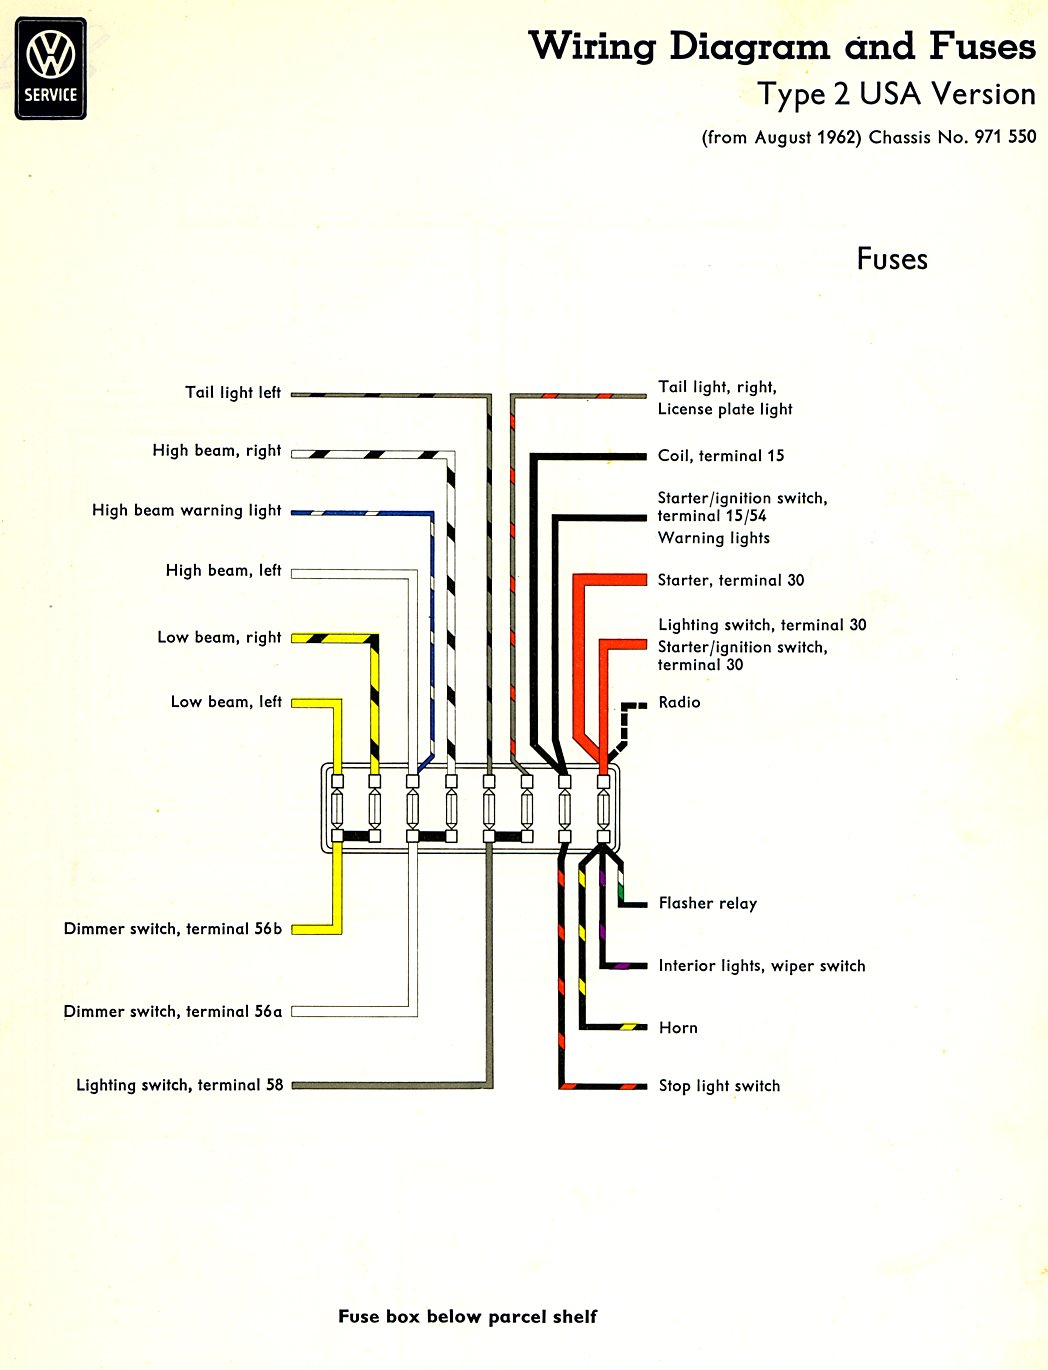 TheSamba.com :: Type 2 Wiring Diagrams on 2000 f250 wiring diagram, windshield wiper motor diagram, brake light wiring diagram, bosch wiper circuit diagram, wiper switch diagram, 2000 ford ranger wiper diagram, lionel switch wiring diagram, 1965 ford wiring diagram, bmw 325i wiring diagram, jeep cj5 wiper motor diagram, trico vacuum wiper motor diagram, windshield wiper assembly diagram,